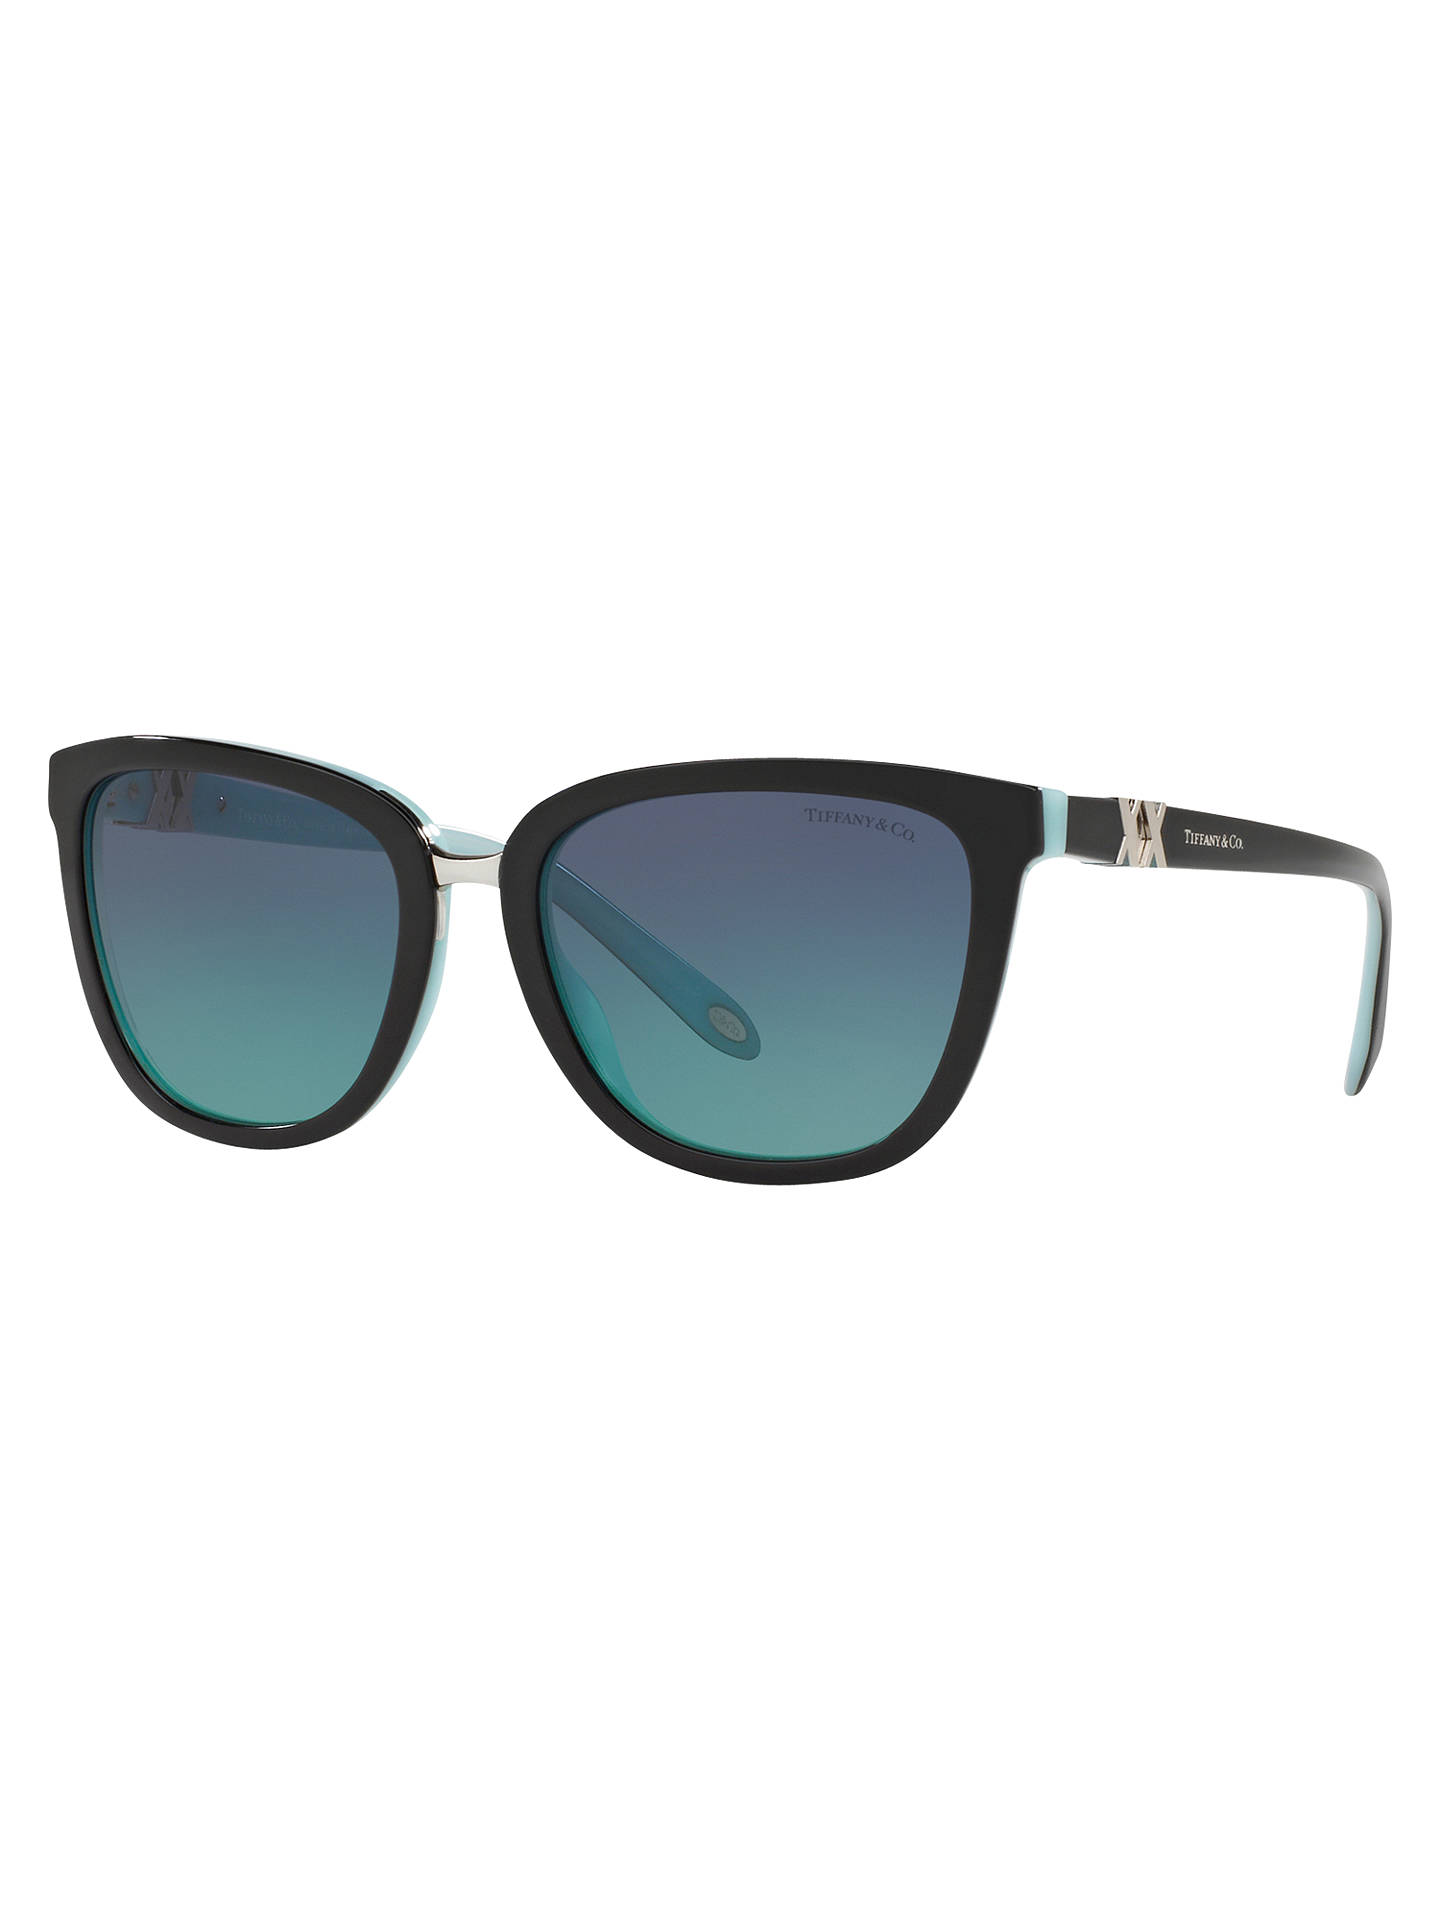 Tiffany & Co TF4123 D-Frame Sunglasses at John Lewis & Partners